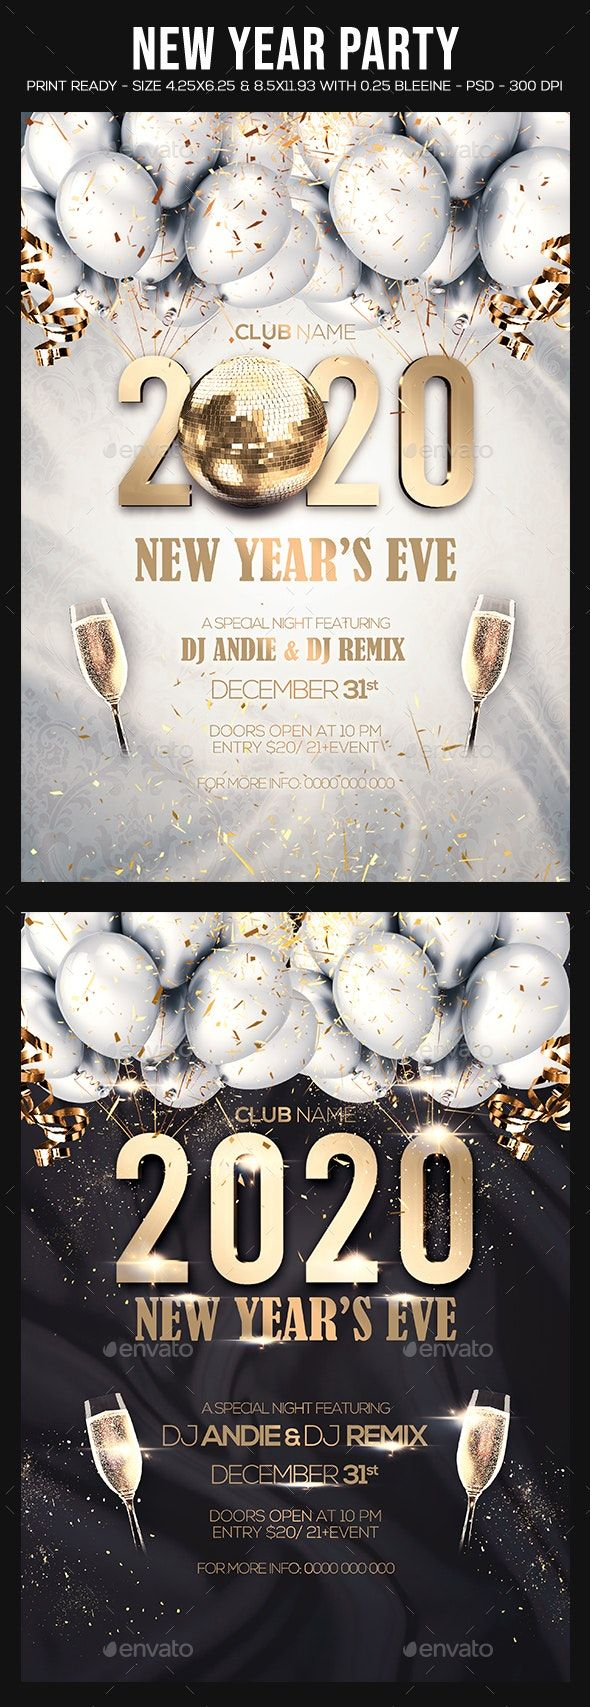 2021 New Year Party Flyer | New year's eve flyer, Party flyer, New years eve pictures